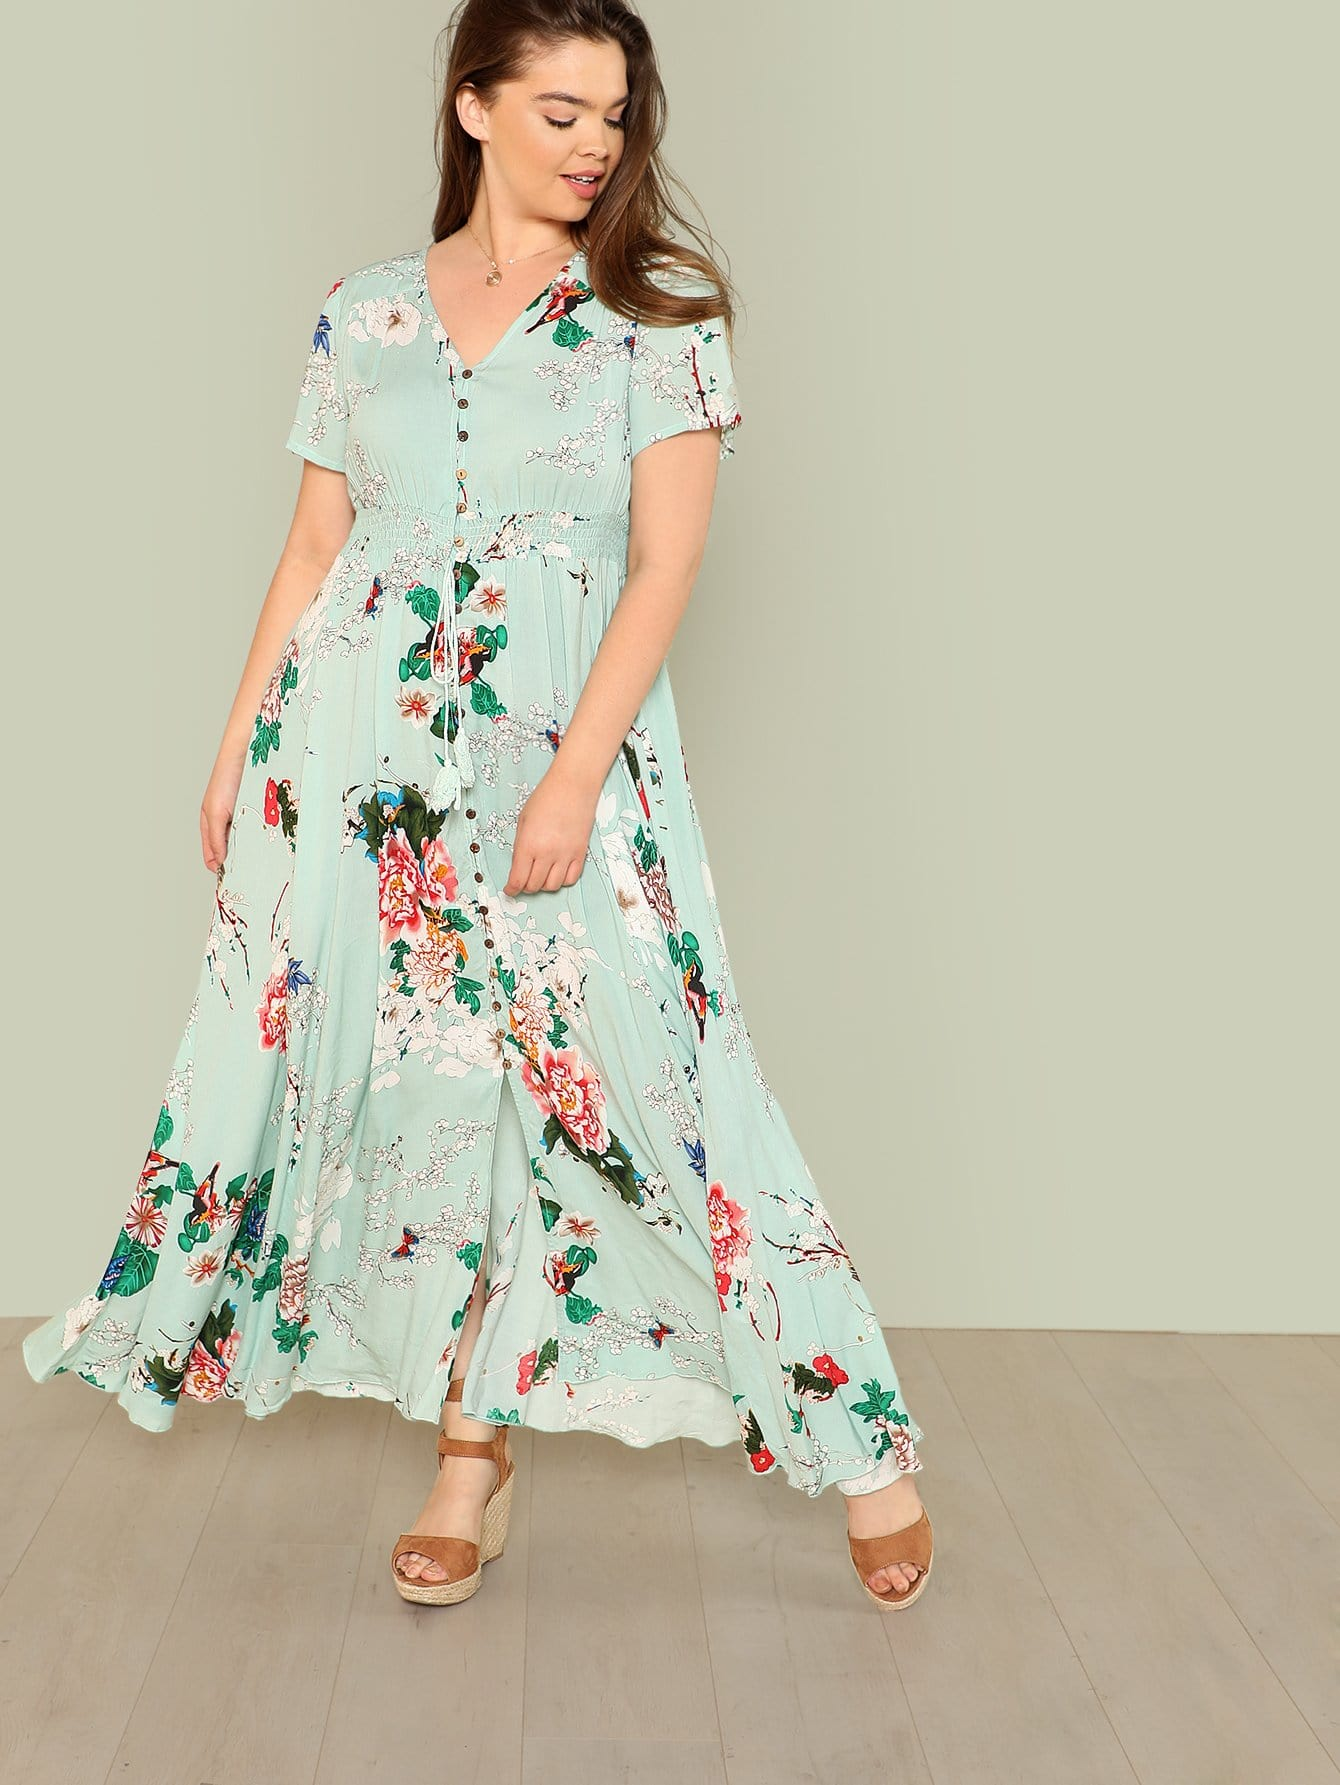 Button Up Fit & Flared Floral Dress button up fit